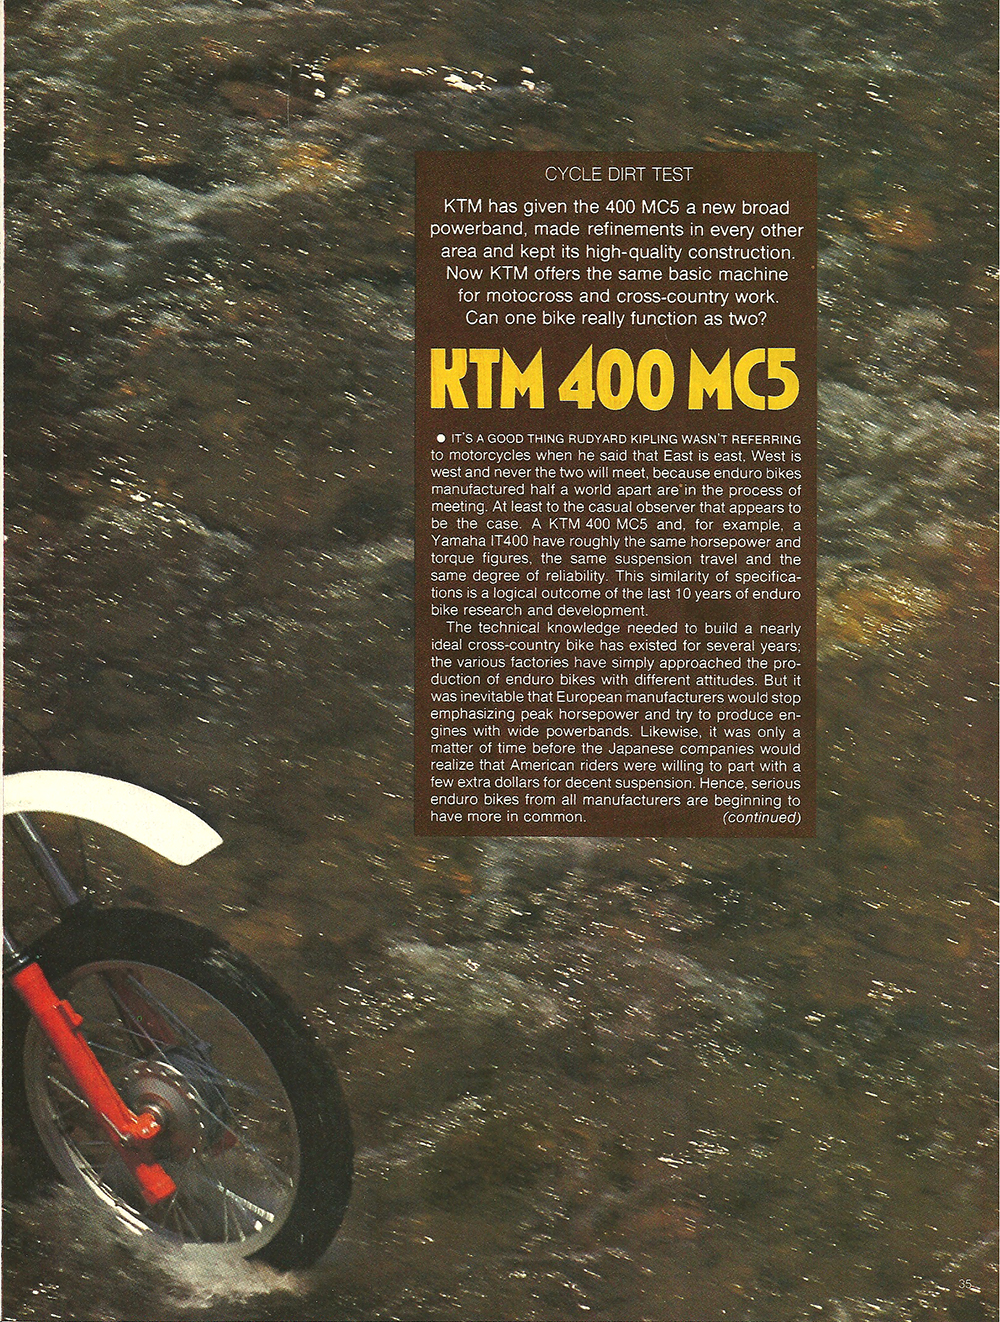 1978 KTM 400 MC5 road test 02.jpg